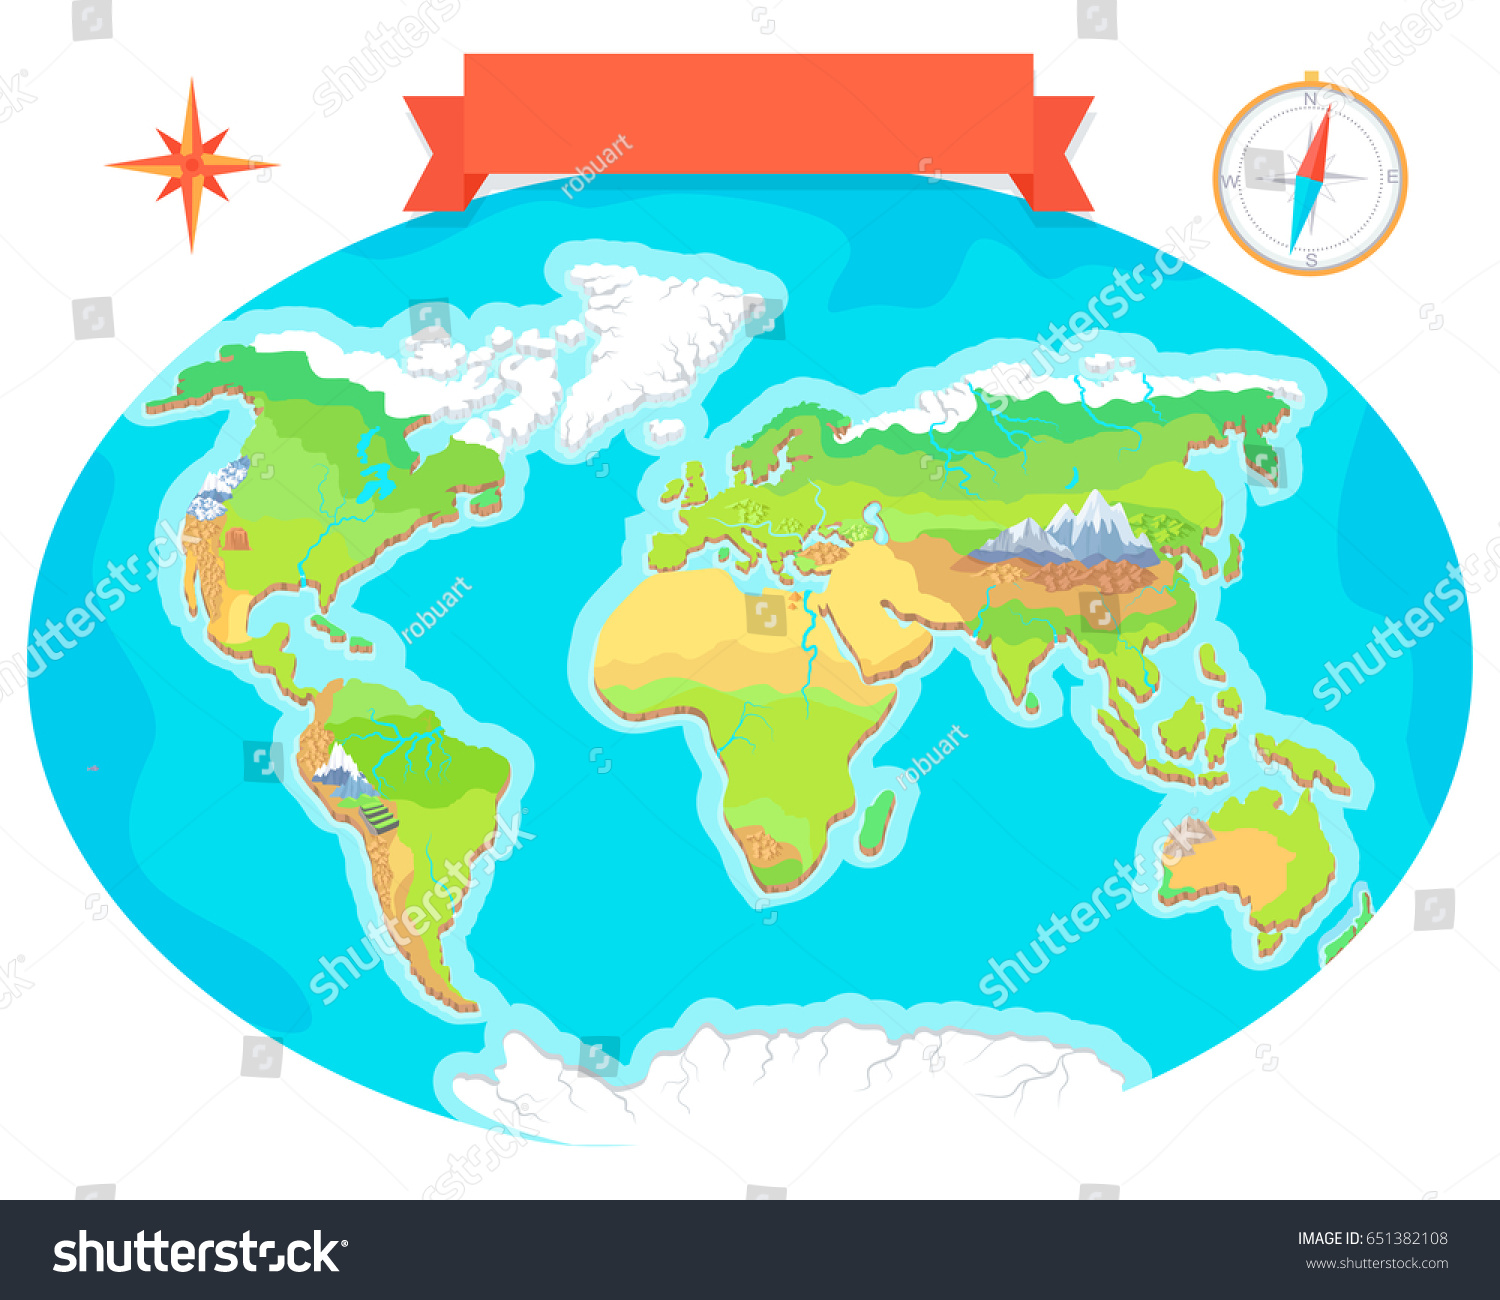 world geographical map names continents oceans stock illustration 651382108 shutterstock